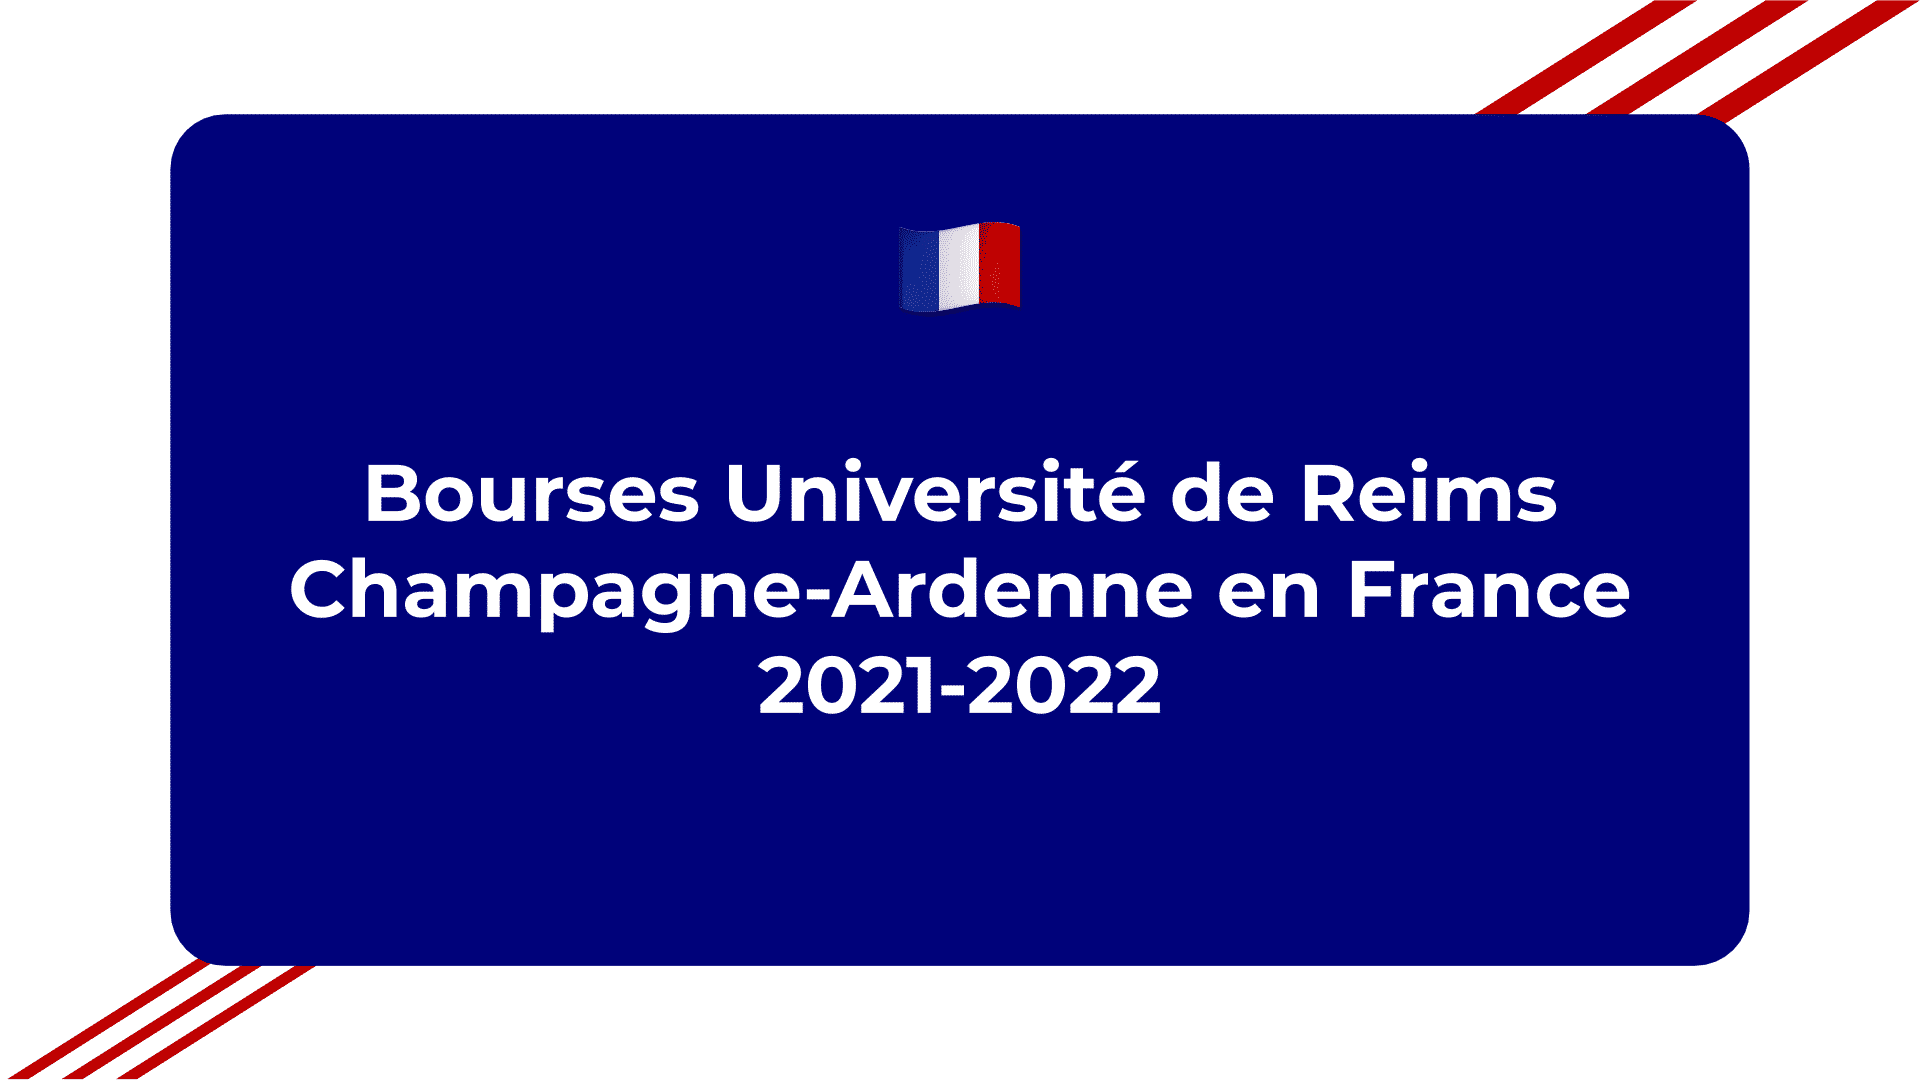 Bourses Université de Reims Champagne Ardenne en France 2021 2022